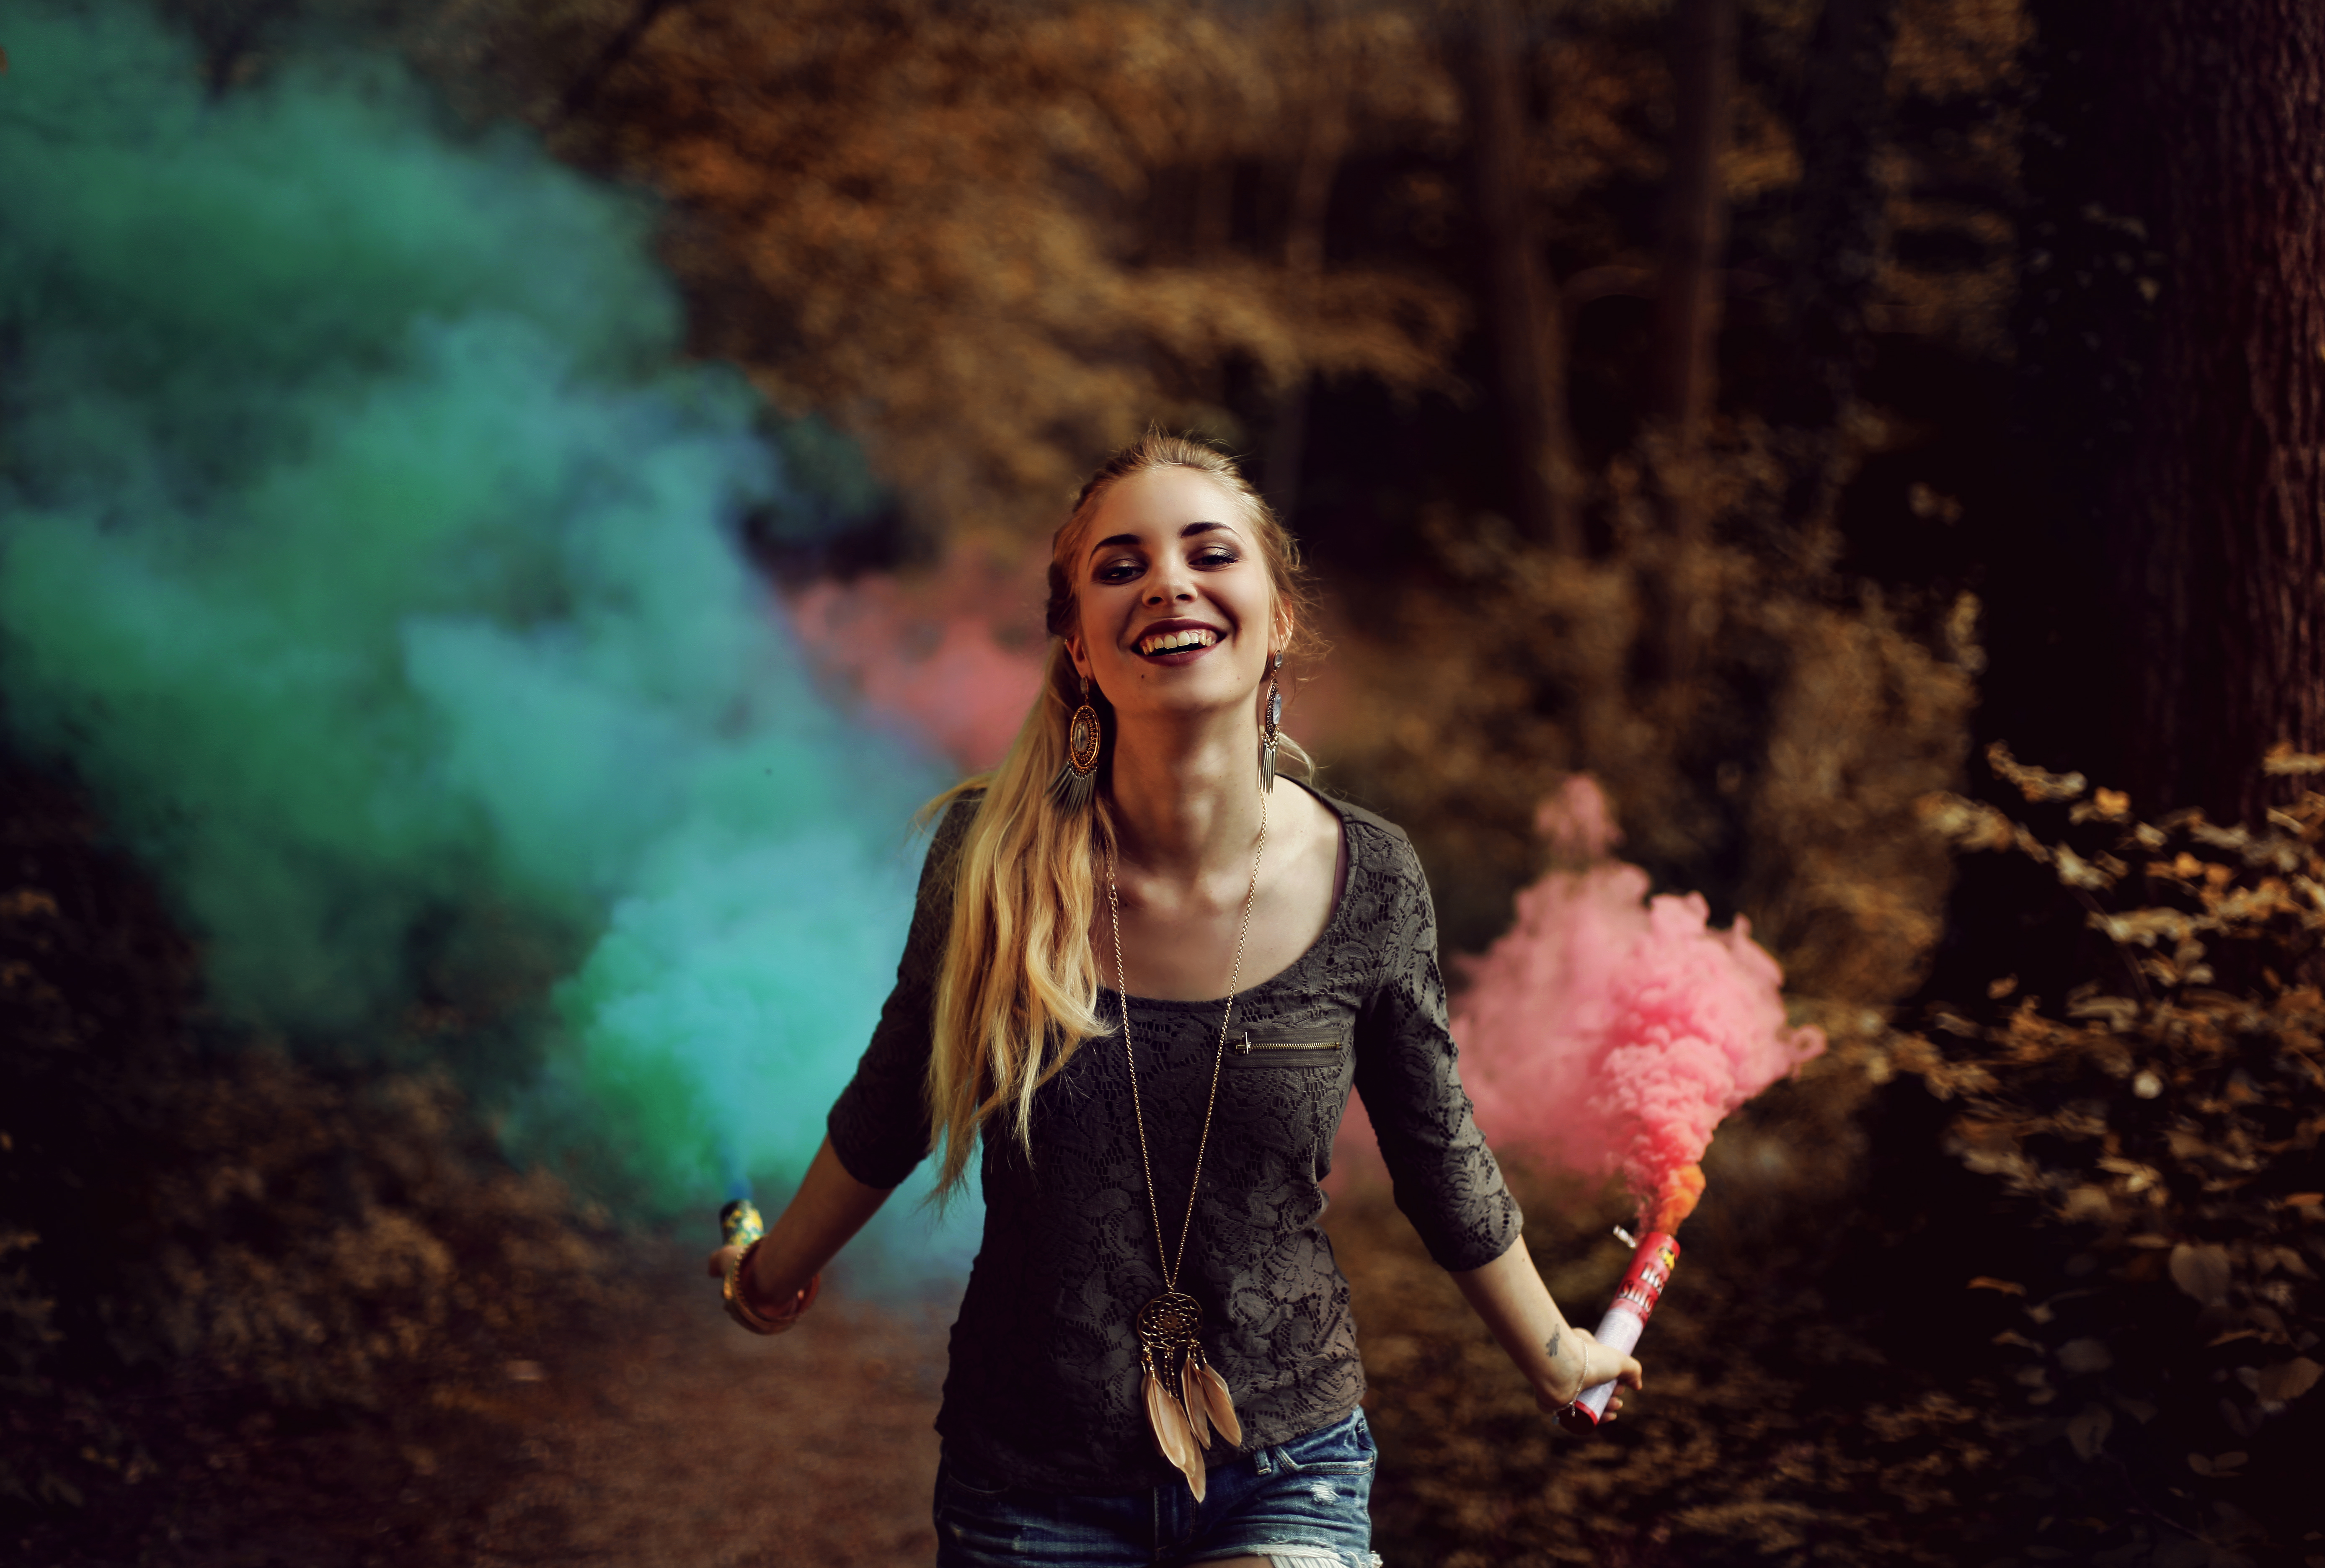 boss-fight-free-high-quality-stock-images-photos-photography-woman-forest-dust-colored-smoke